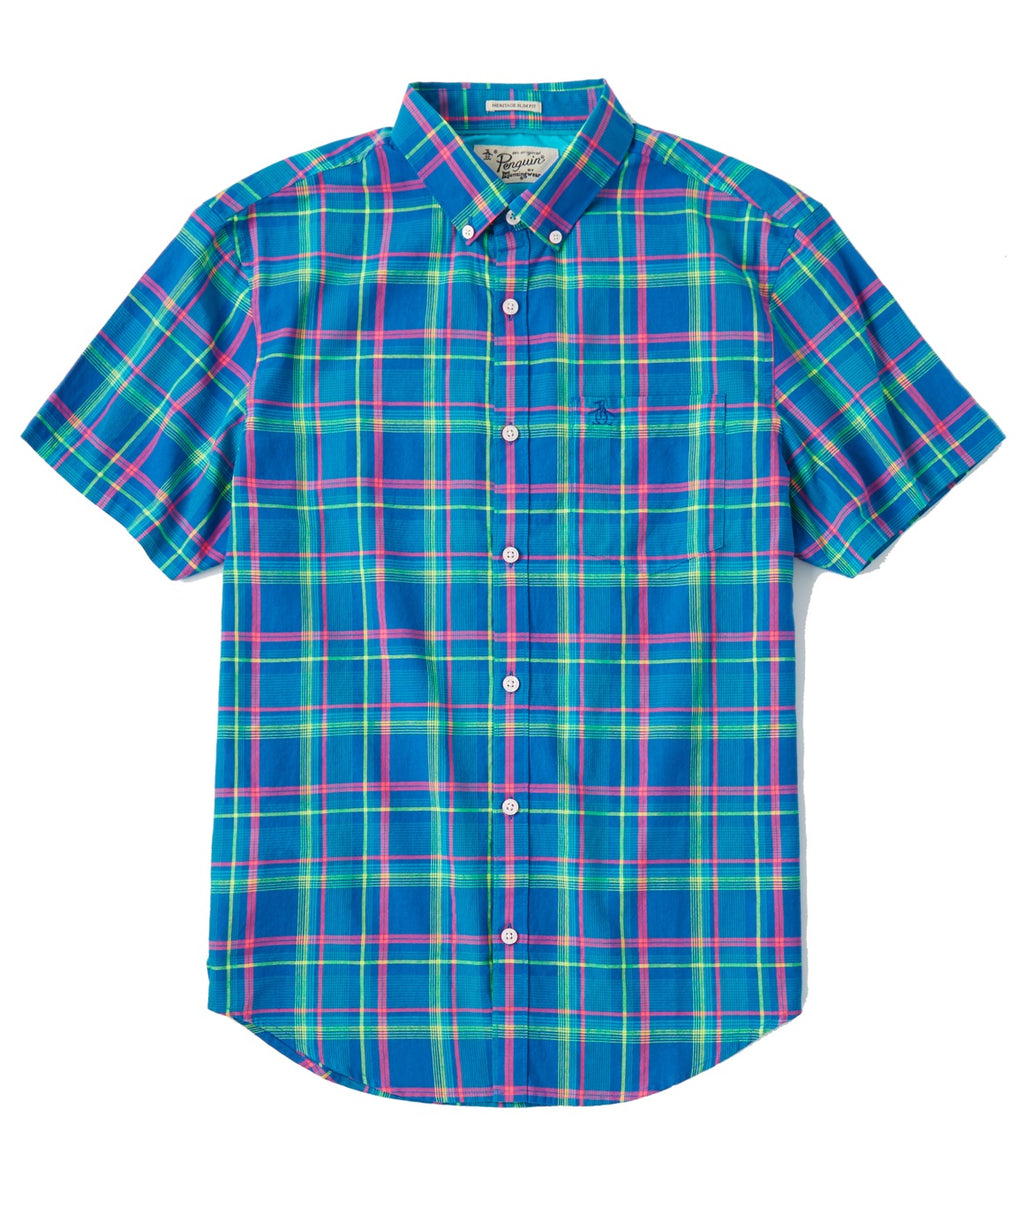 Original Penguin Colorful Plaid Lawn Heritage SS Shirt - TRUE BLUE